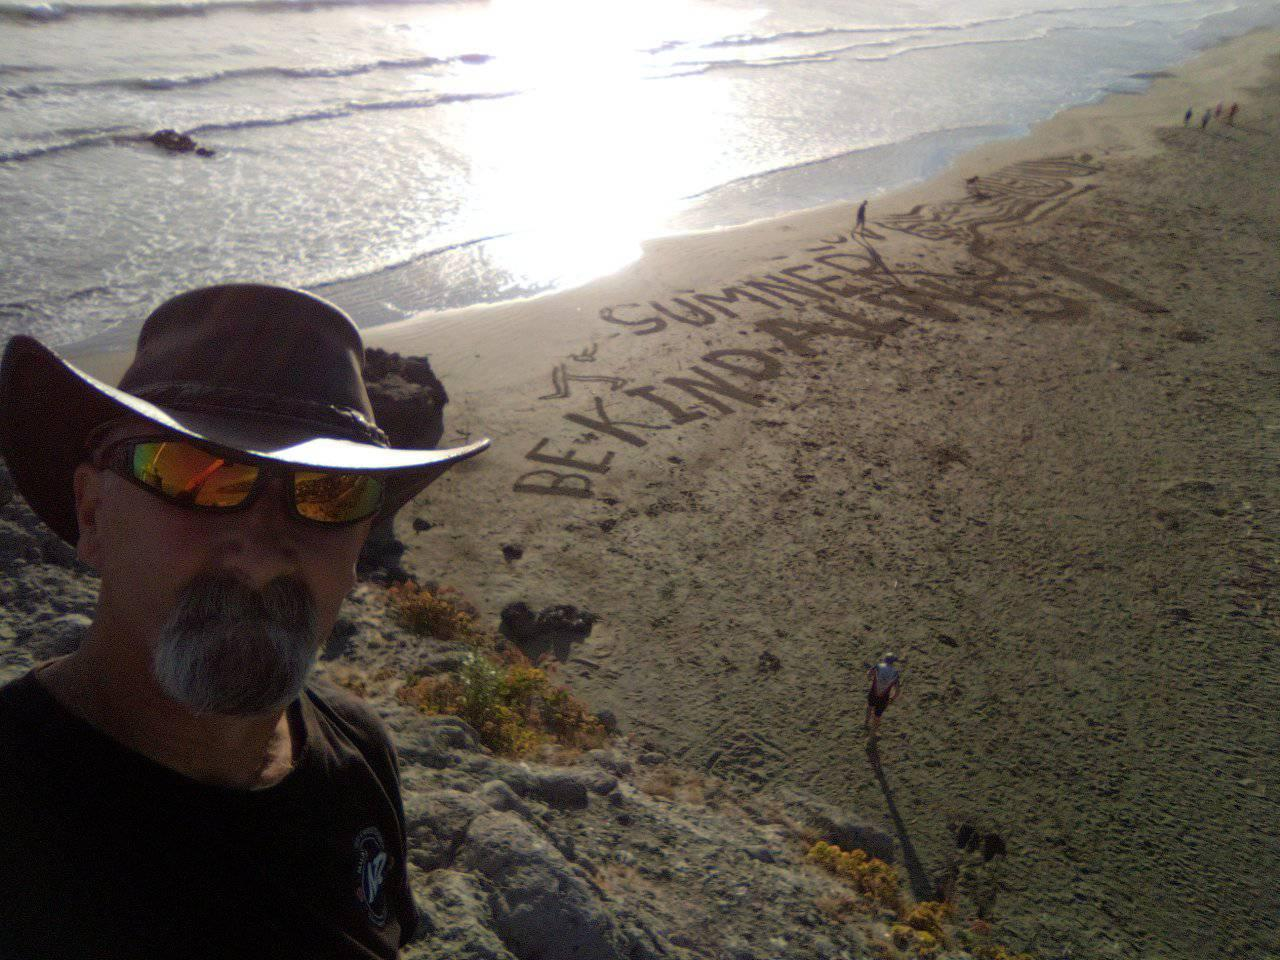 Webb spends hours creating unique murals in the sand; his purpose - just to make people smile....